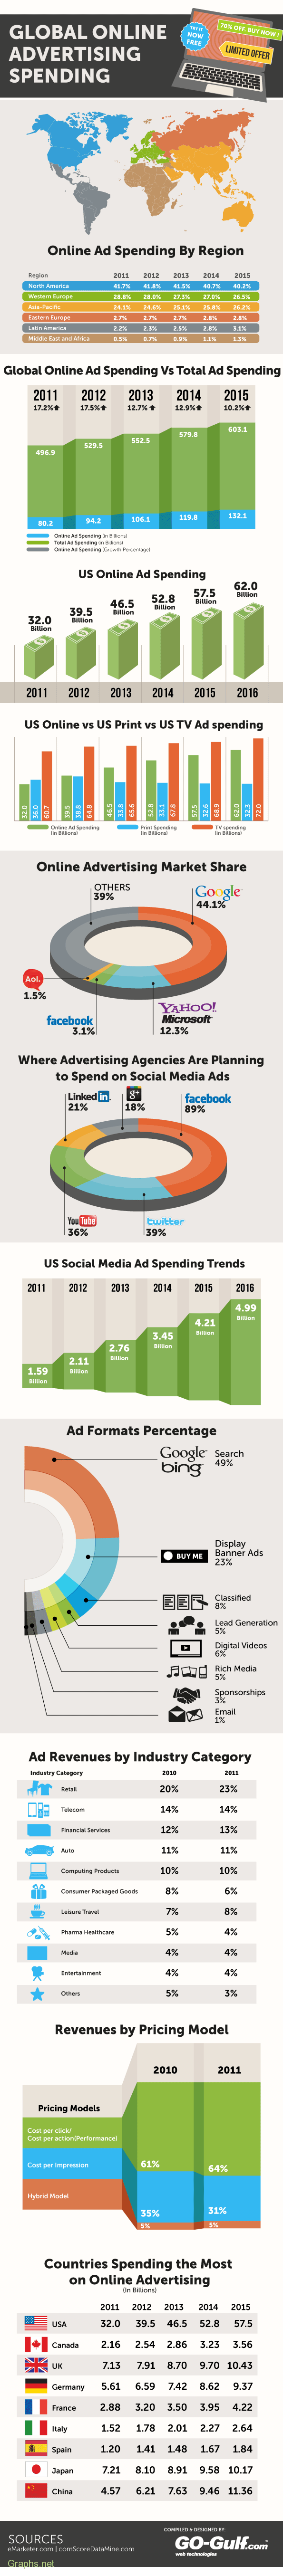 Global expenditure on online advertising